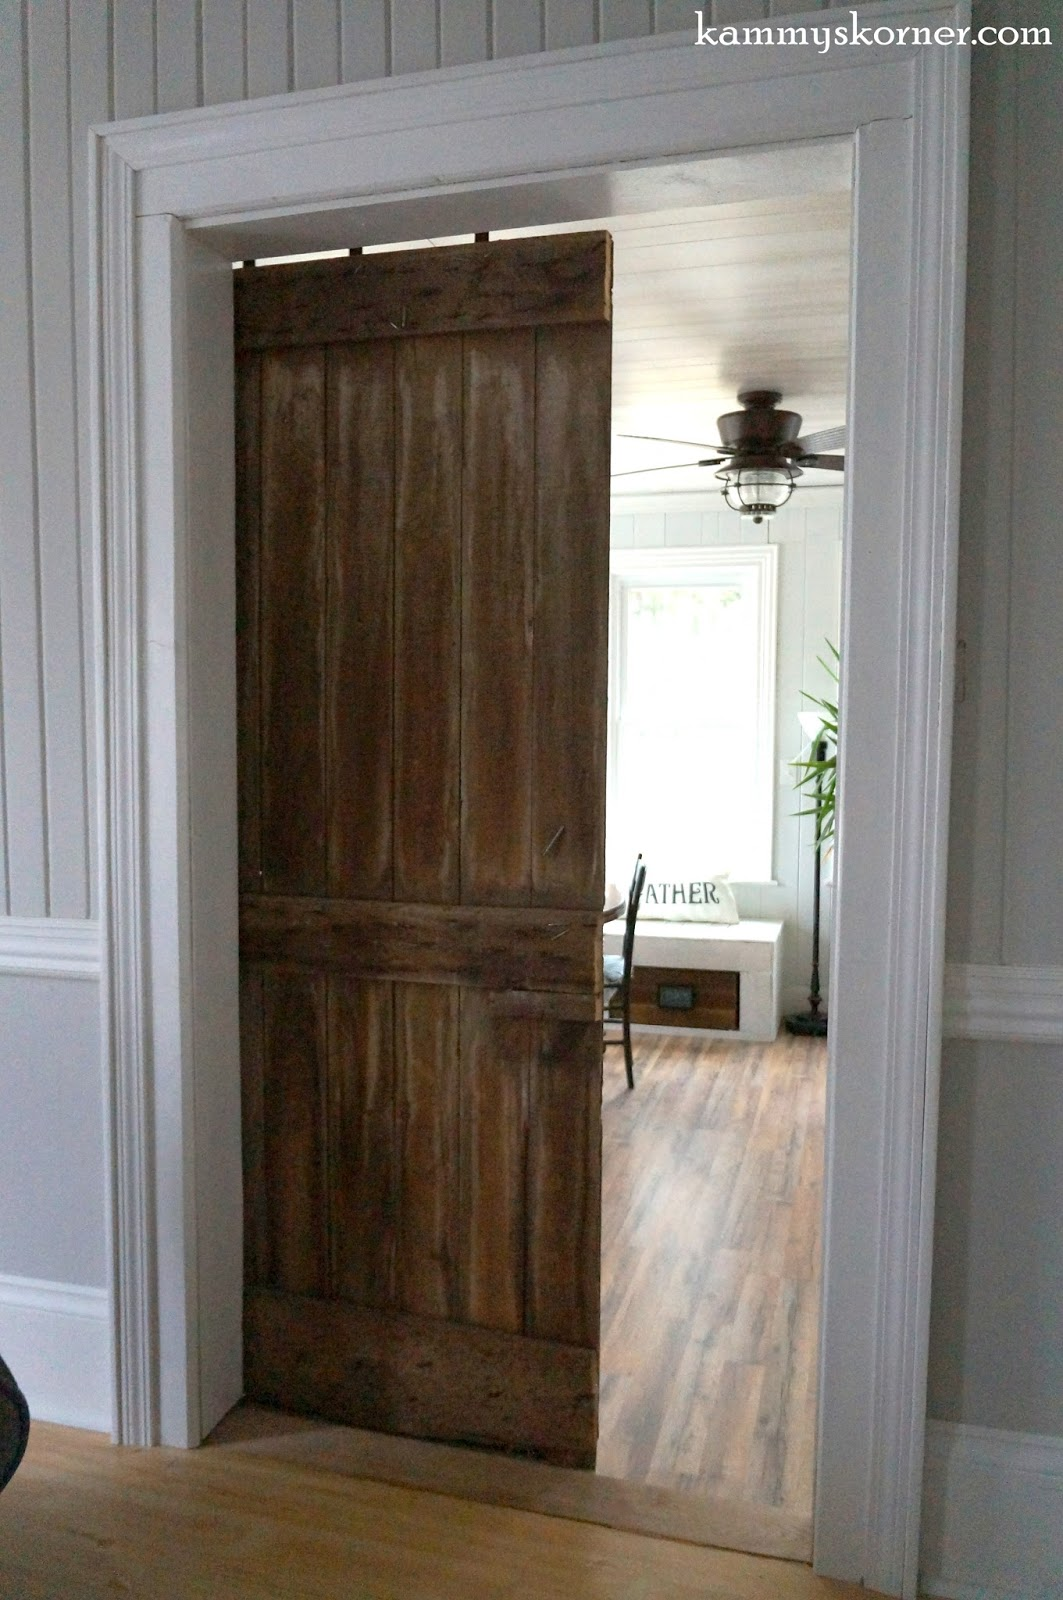 Kammy's Korner: Rescued Barn Door From a Forsaken Iowa Farm